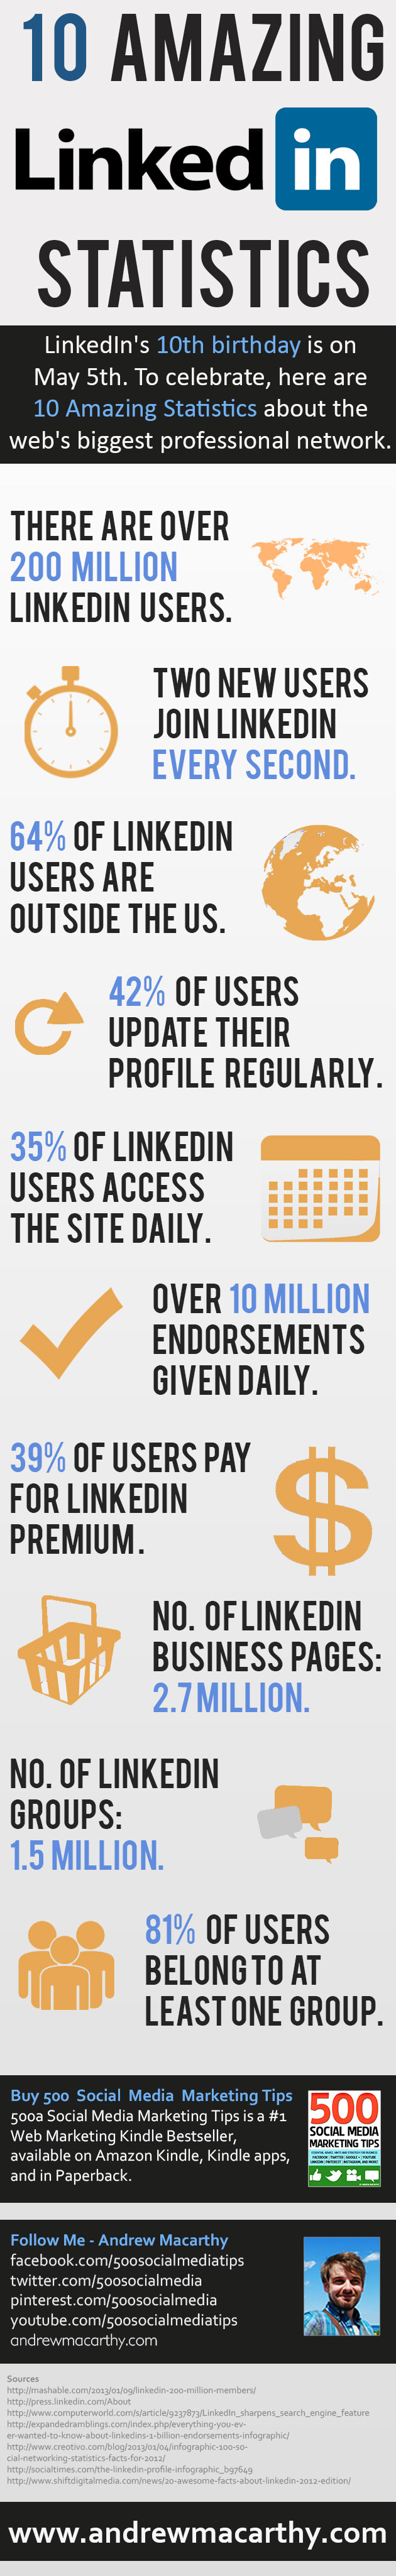 linkedin-infographic-statistics-facts-figures-2013.jpg